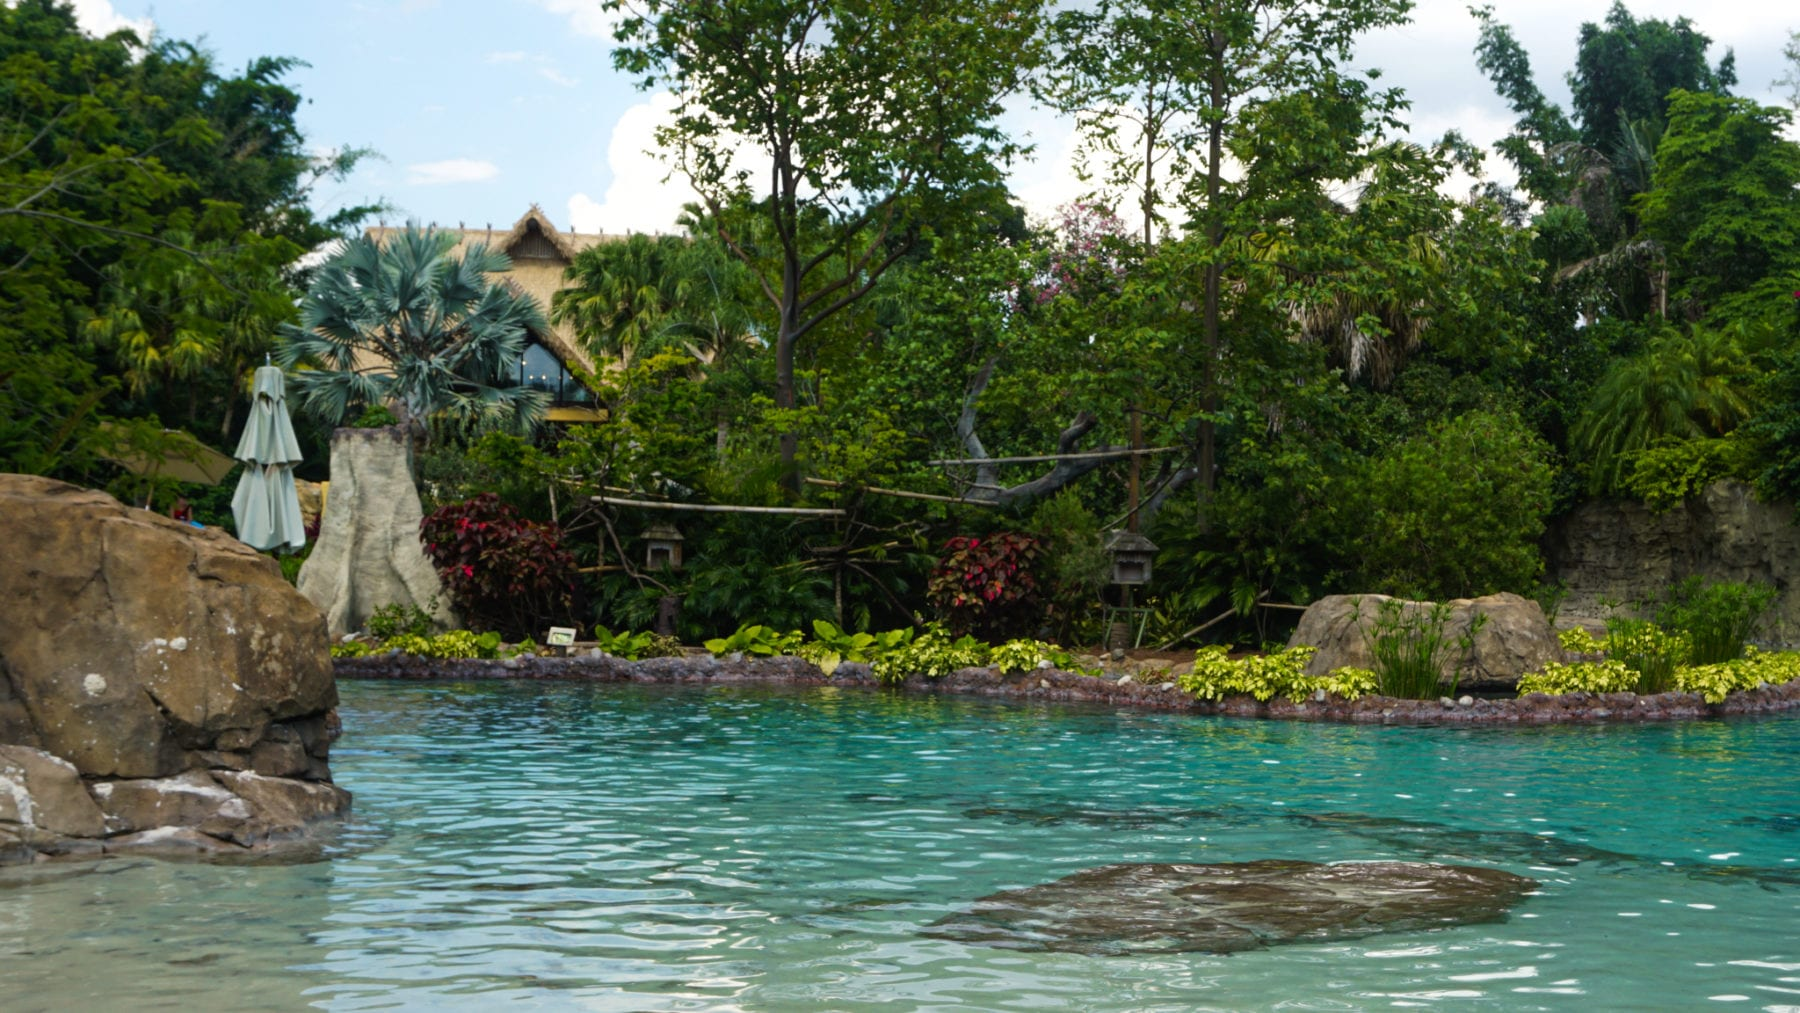 Amusement Parks in the USA - Discovery Cove